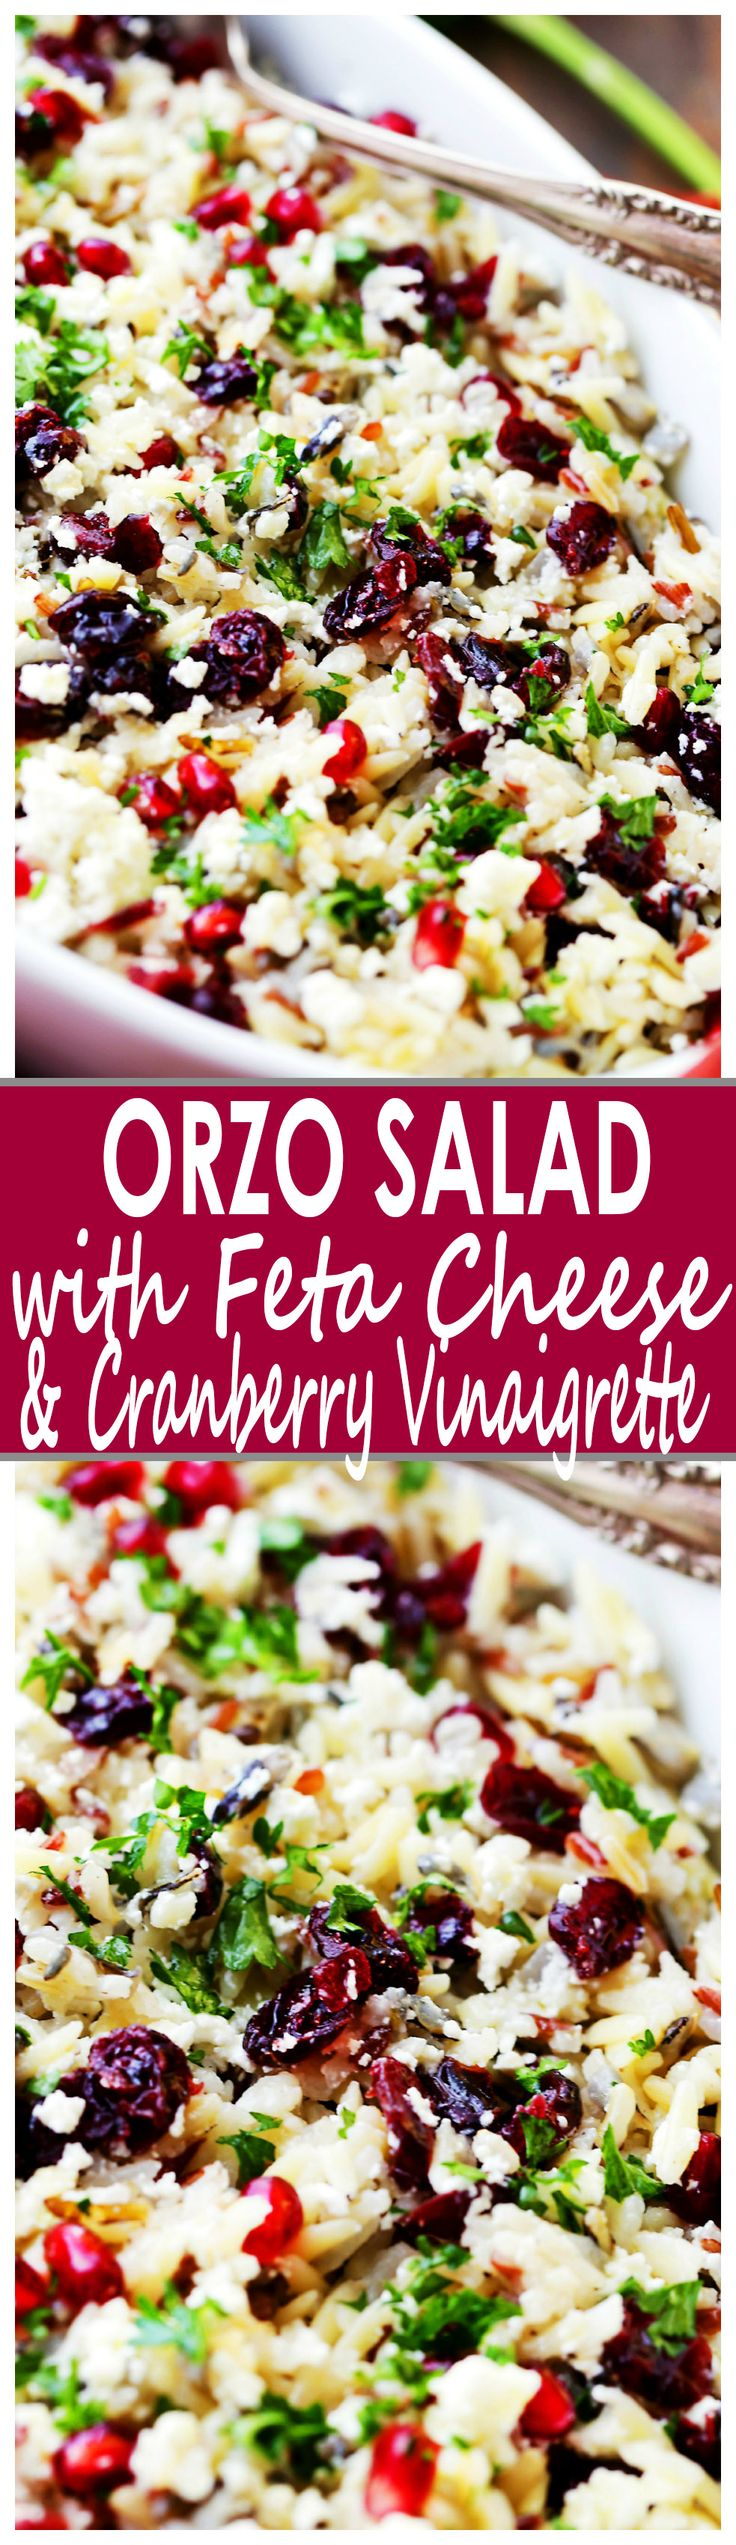 Orzo Pasta Salad with Feta Cheese and Cranberry Pomegranate Vinaigrette Recipe - This cheesy orzo pasta salad is full of bright and colorful winter flavors tossed with a delicious dose of Cranberry Pomegranate Vinaigrette. It's also the perfect side dish to share at your next Holiday gathering!